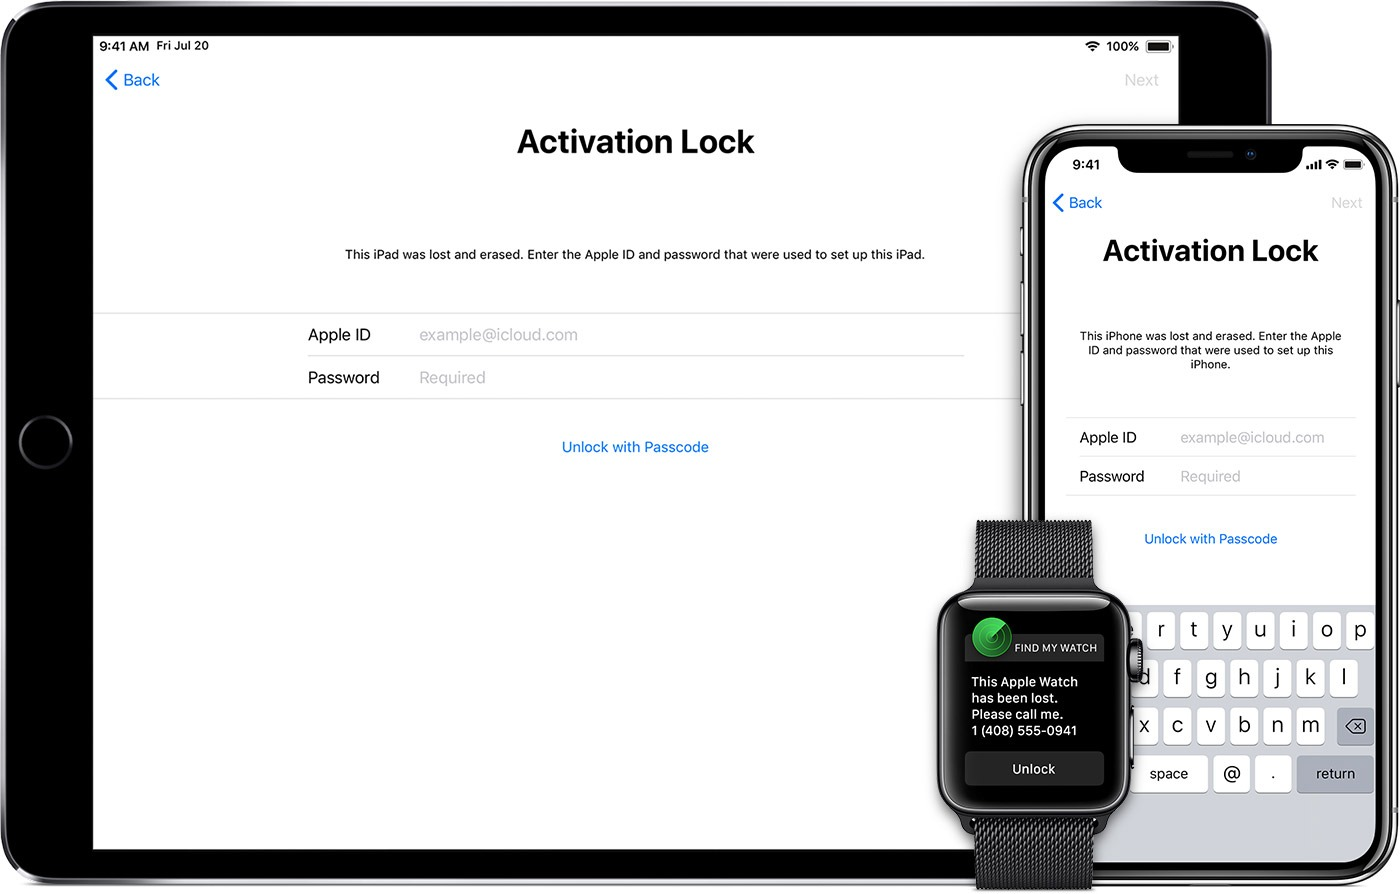 ios12-ipad-pro-iphone-x-watch-activation-lock-hero